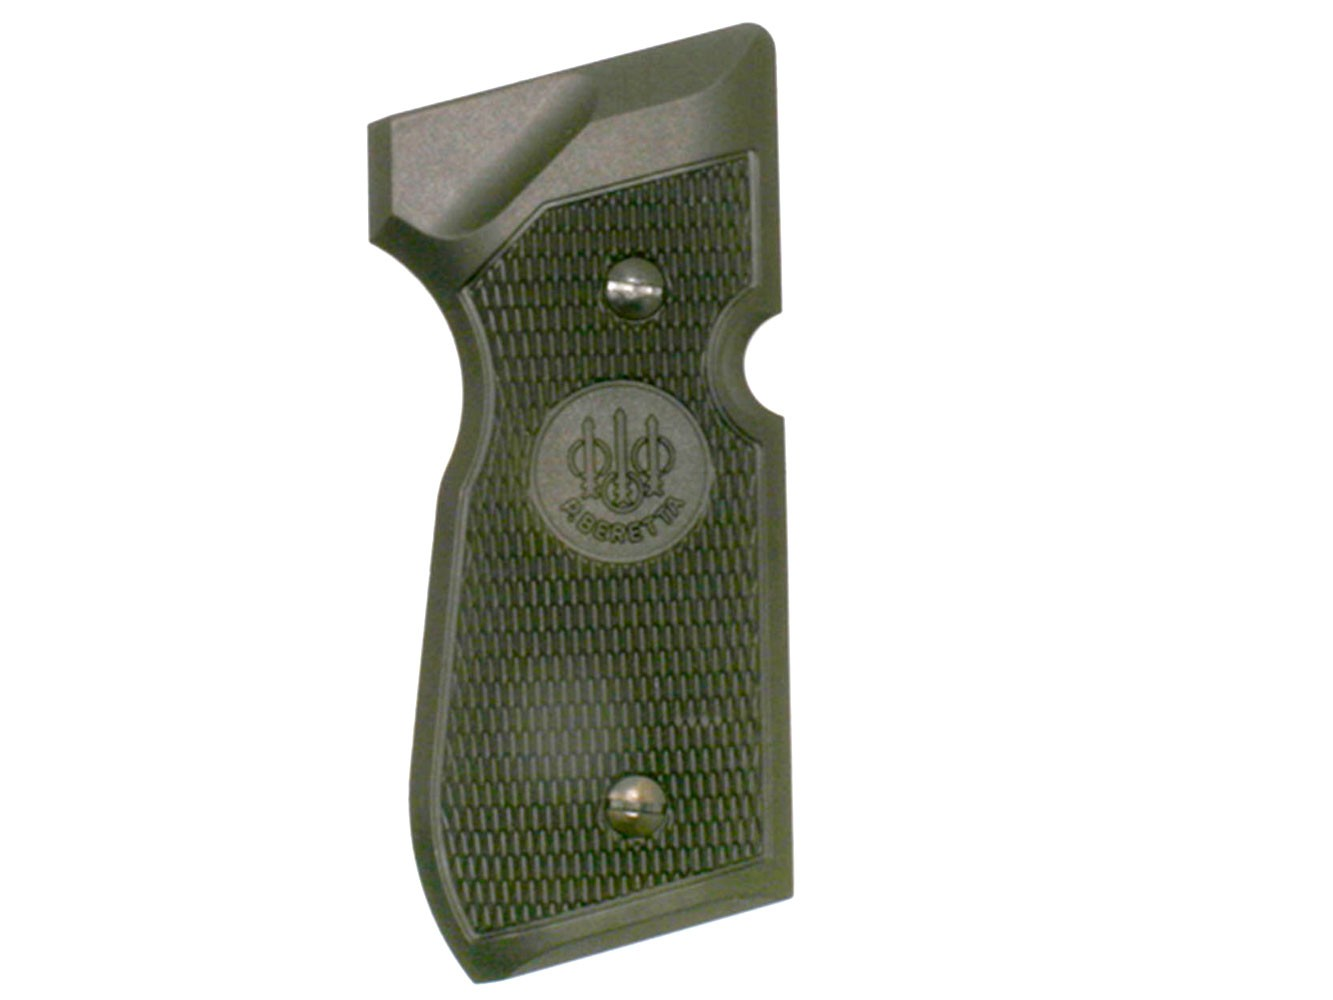 Beretta 92FS Grip, Brown Plastic, Right Side Only